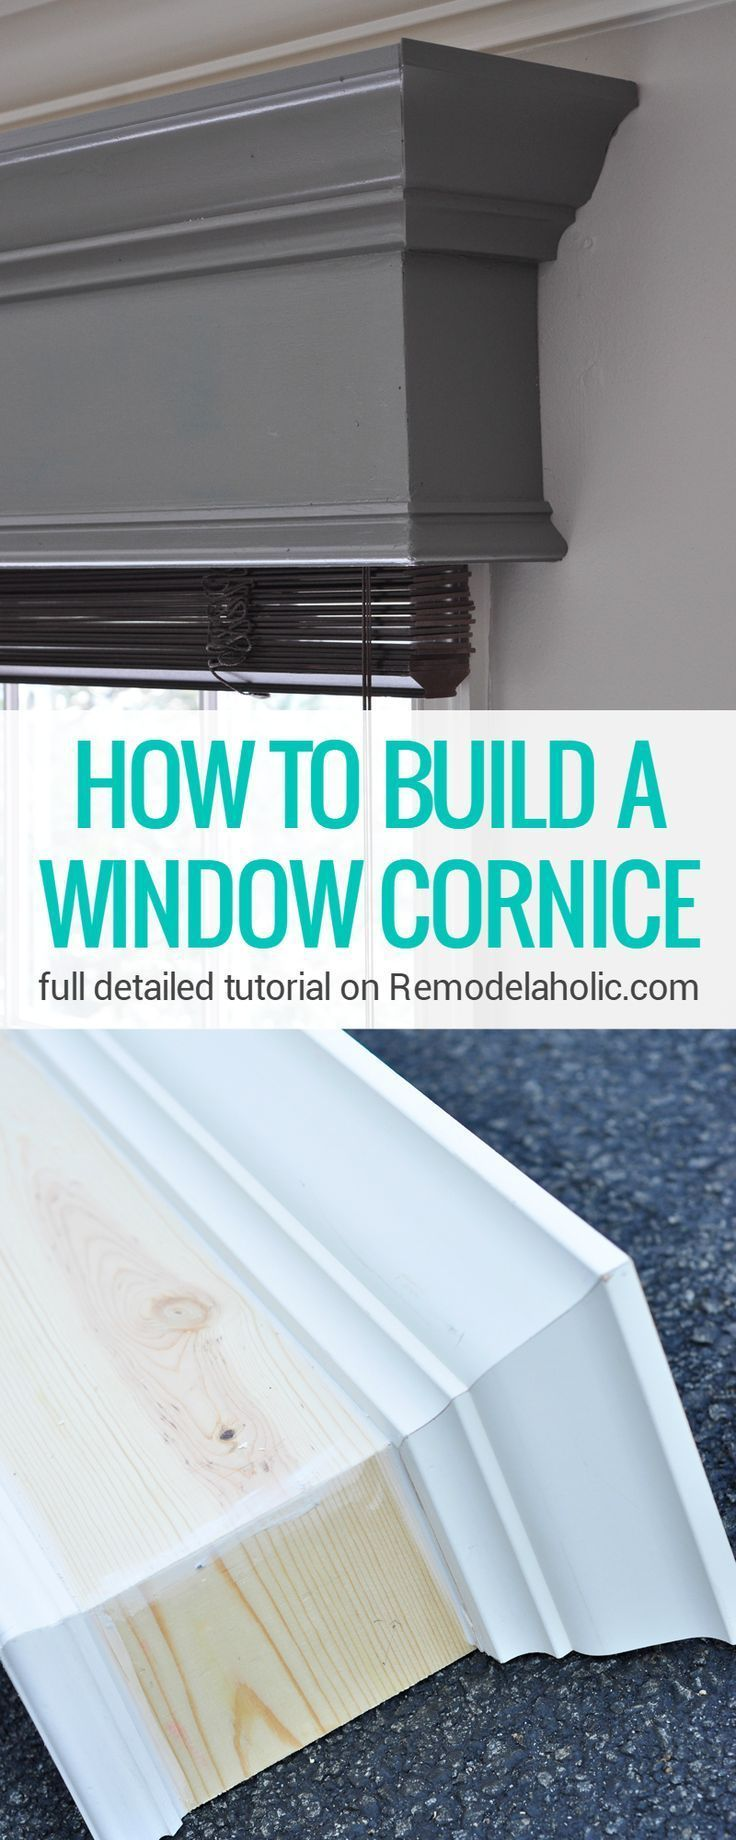 This DIY window cornice gives windows a MAJOR new look! Full detailed step-by-step photo tutorial on Remodelaholic.com #DIY #Home